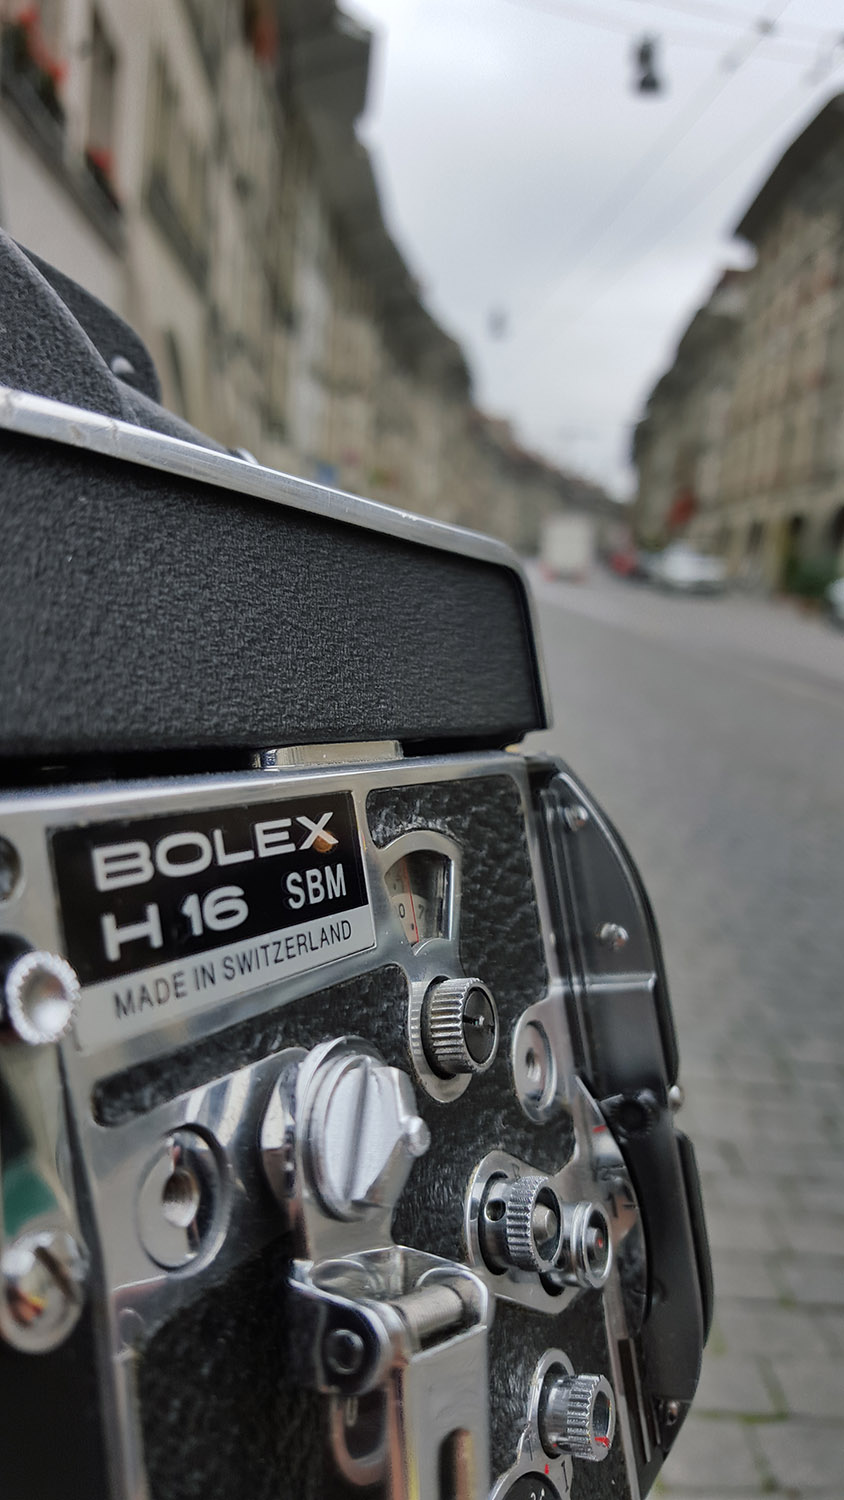 Bolex, you're home!